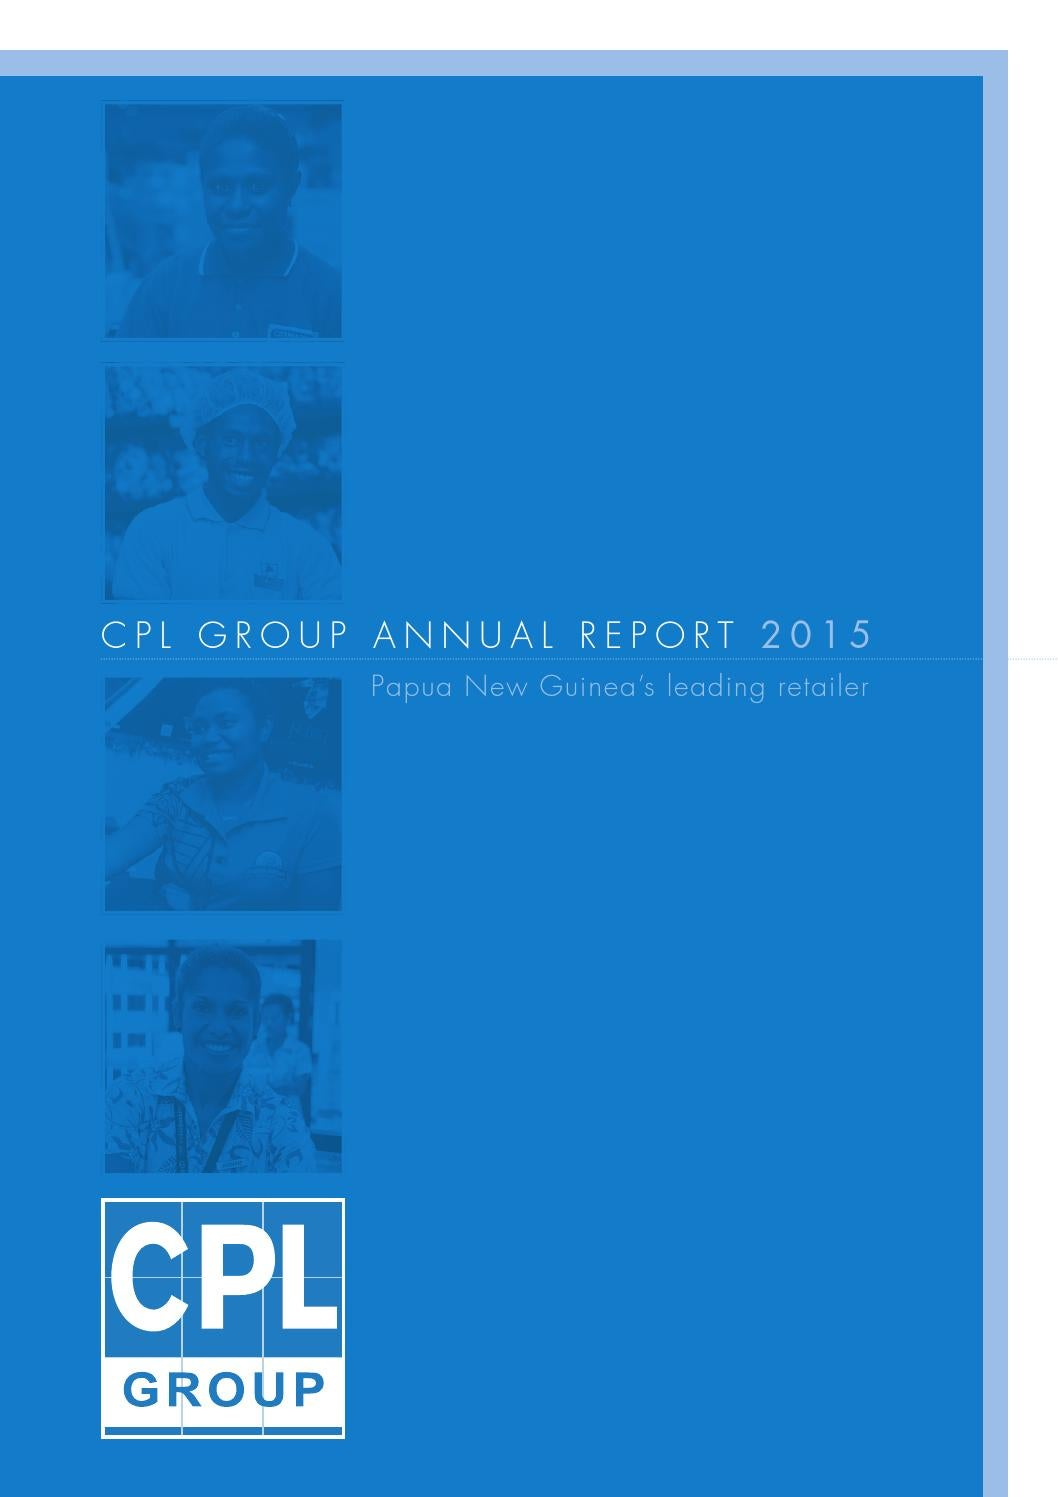 CPL Group Annual Report 2015 by Business Advantage International ...